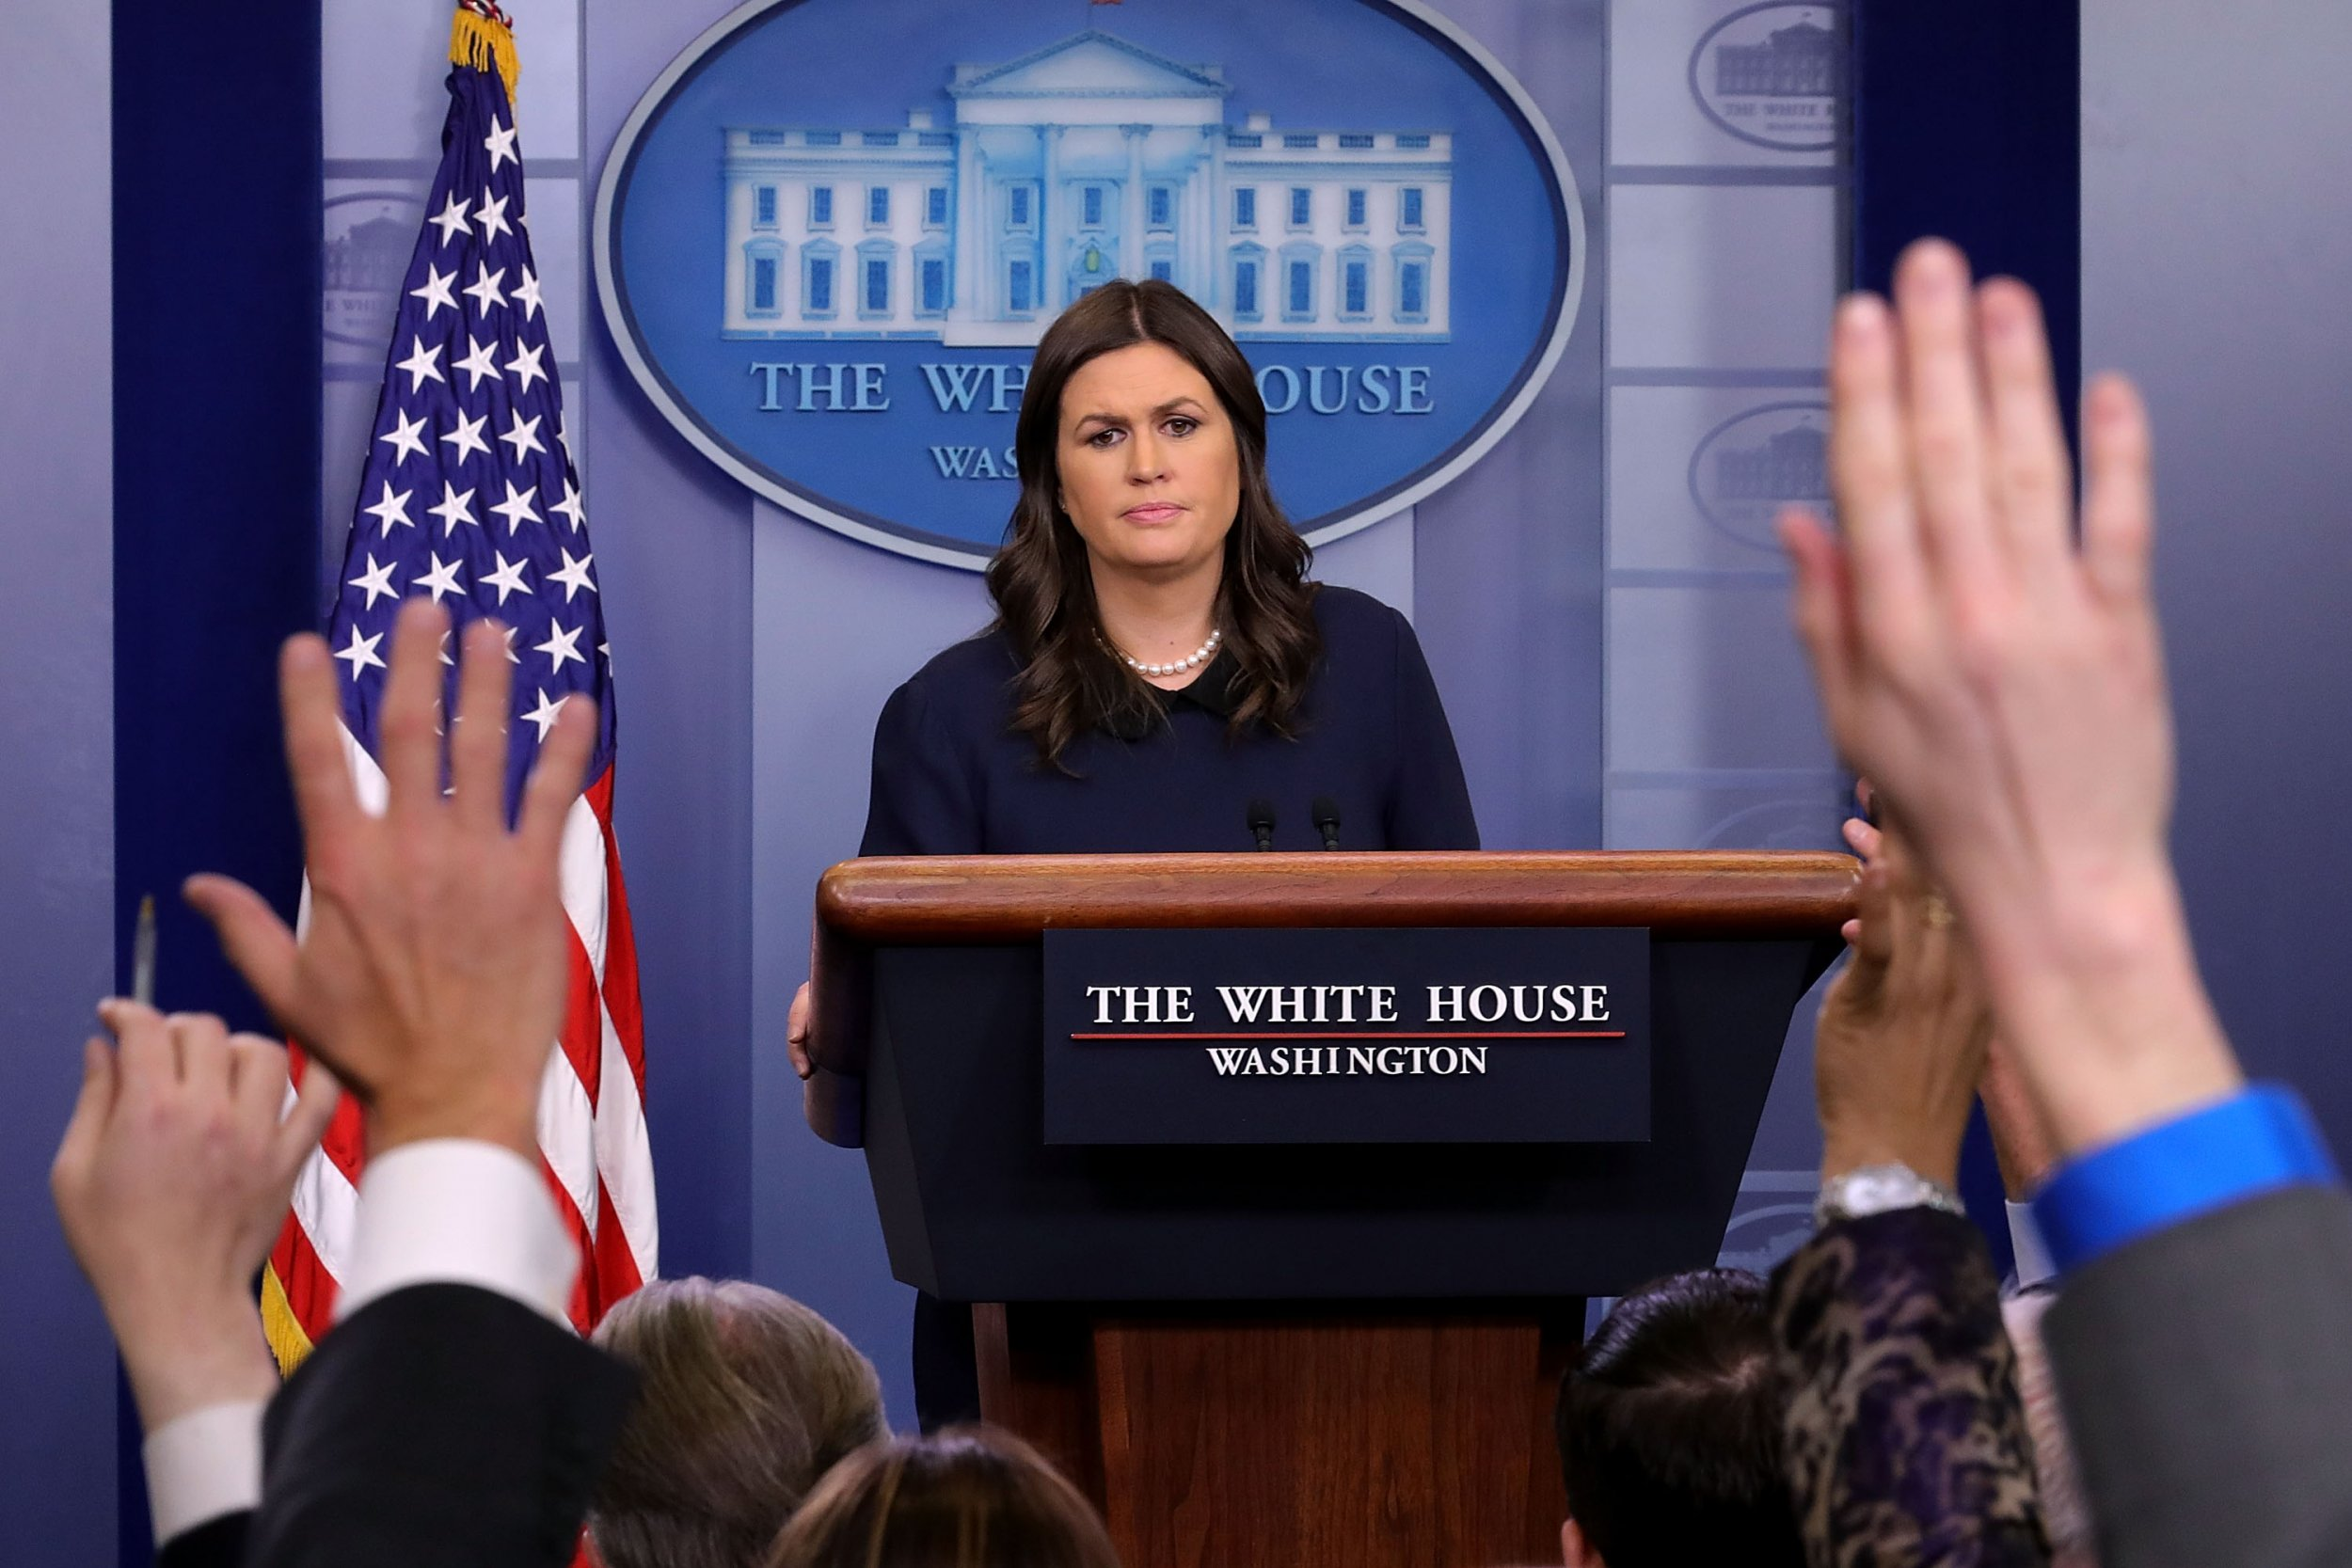 Sarah Sanders used official Twitter to complain about Batman